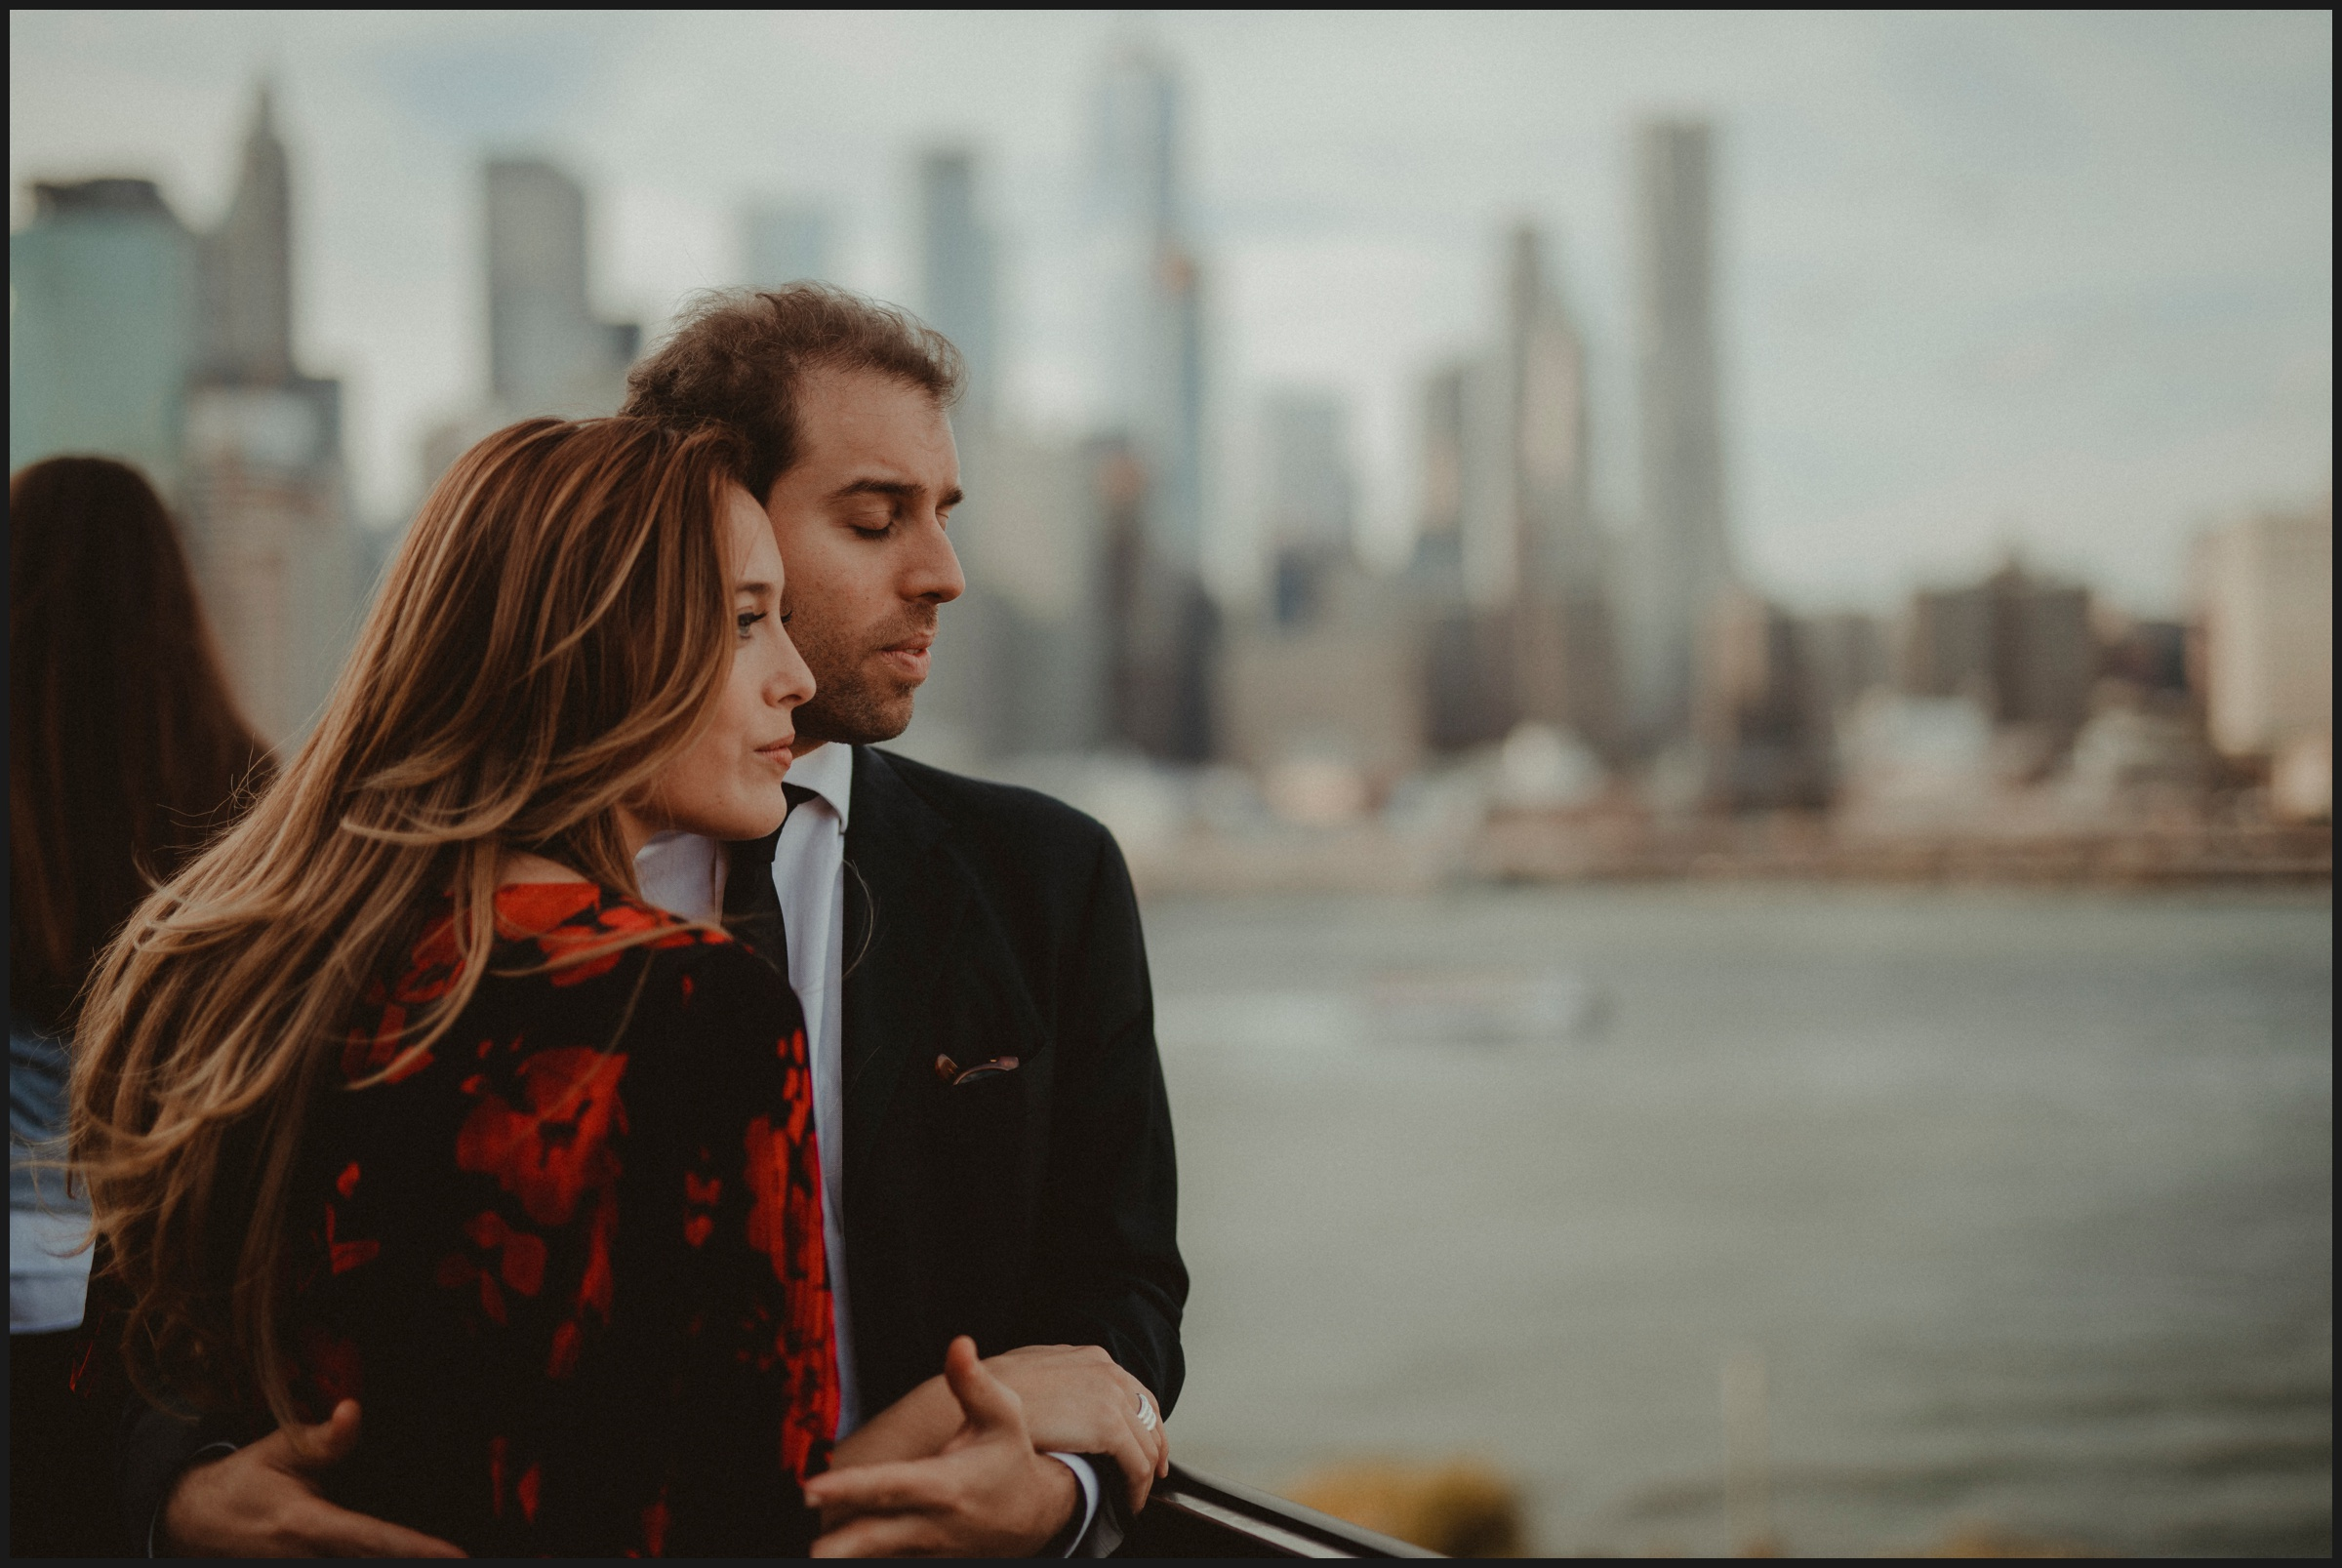 engagement session in a Rooftop of Brooklyn